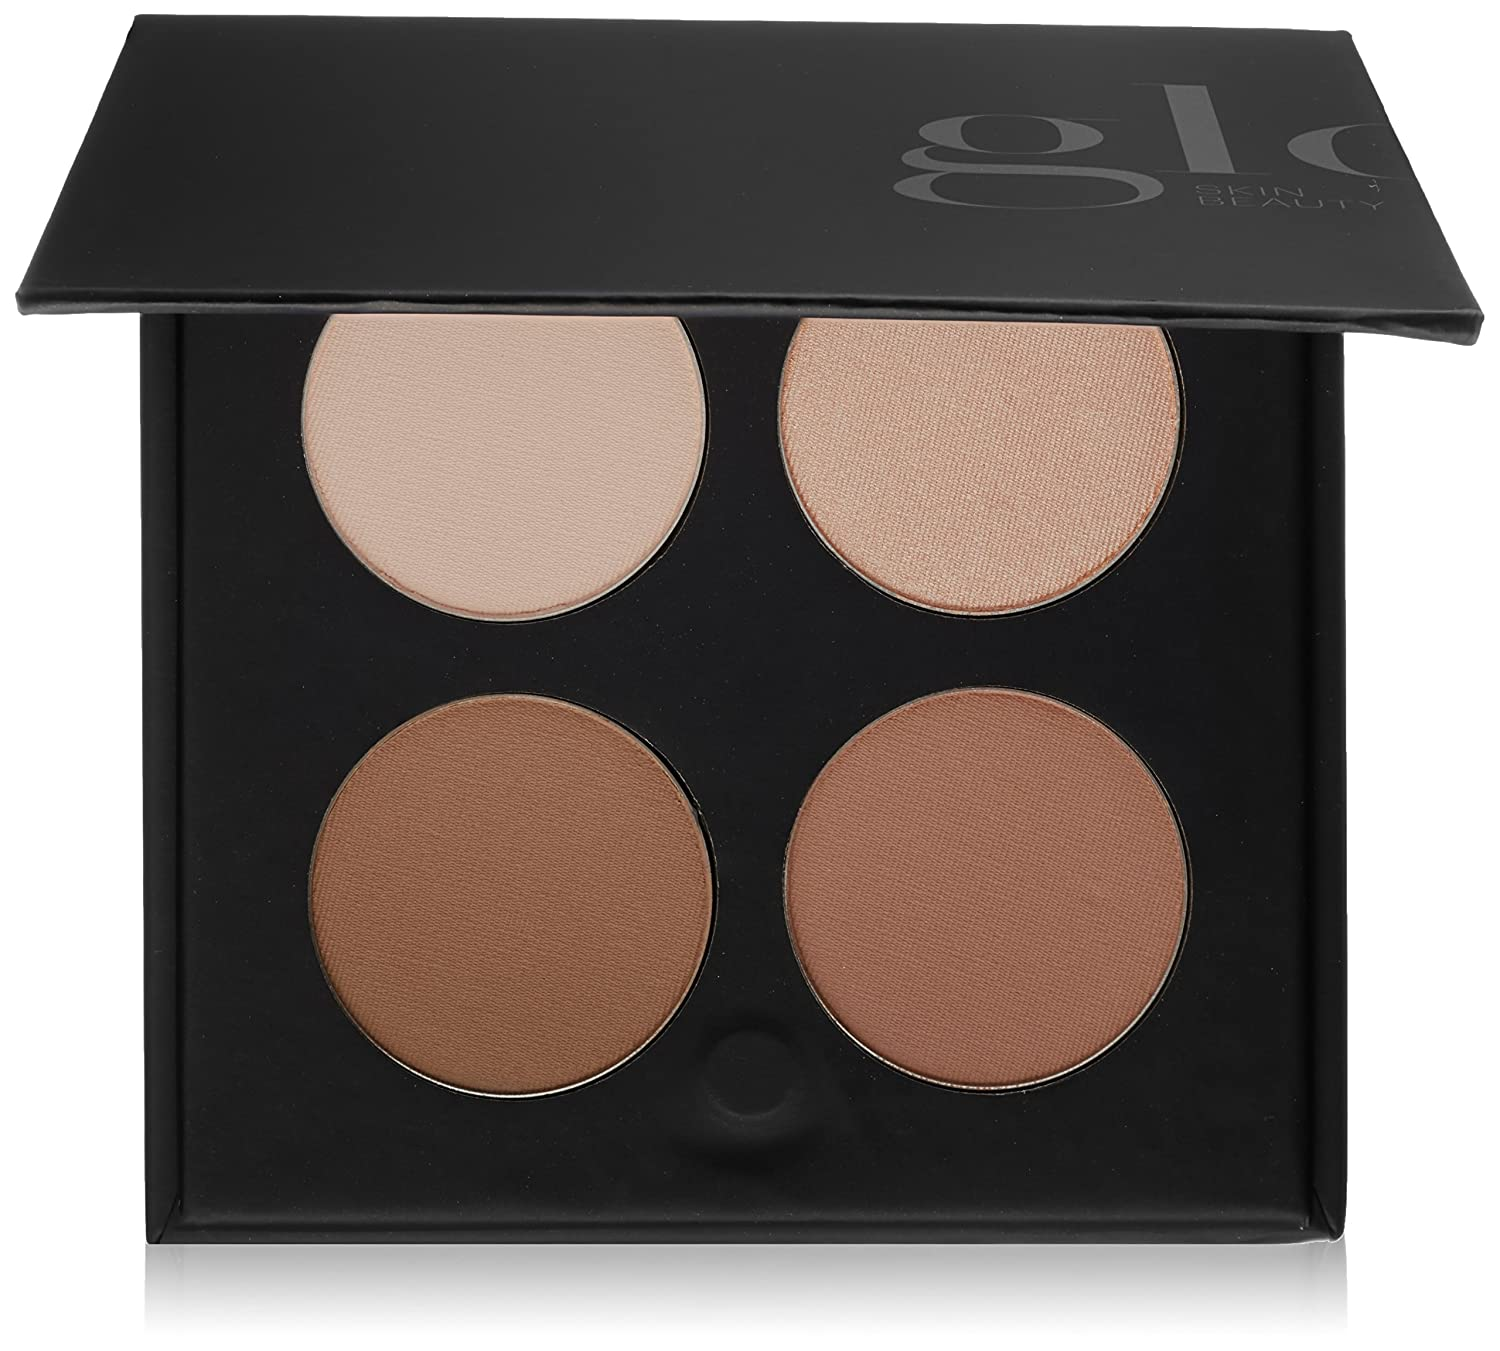 Glo Skin Beauty Contour Kit | Face Contour and Highlight Palette with Instructions | 2 Shade Options